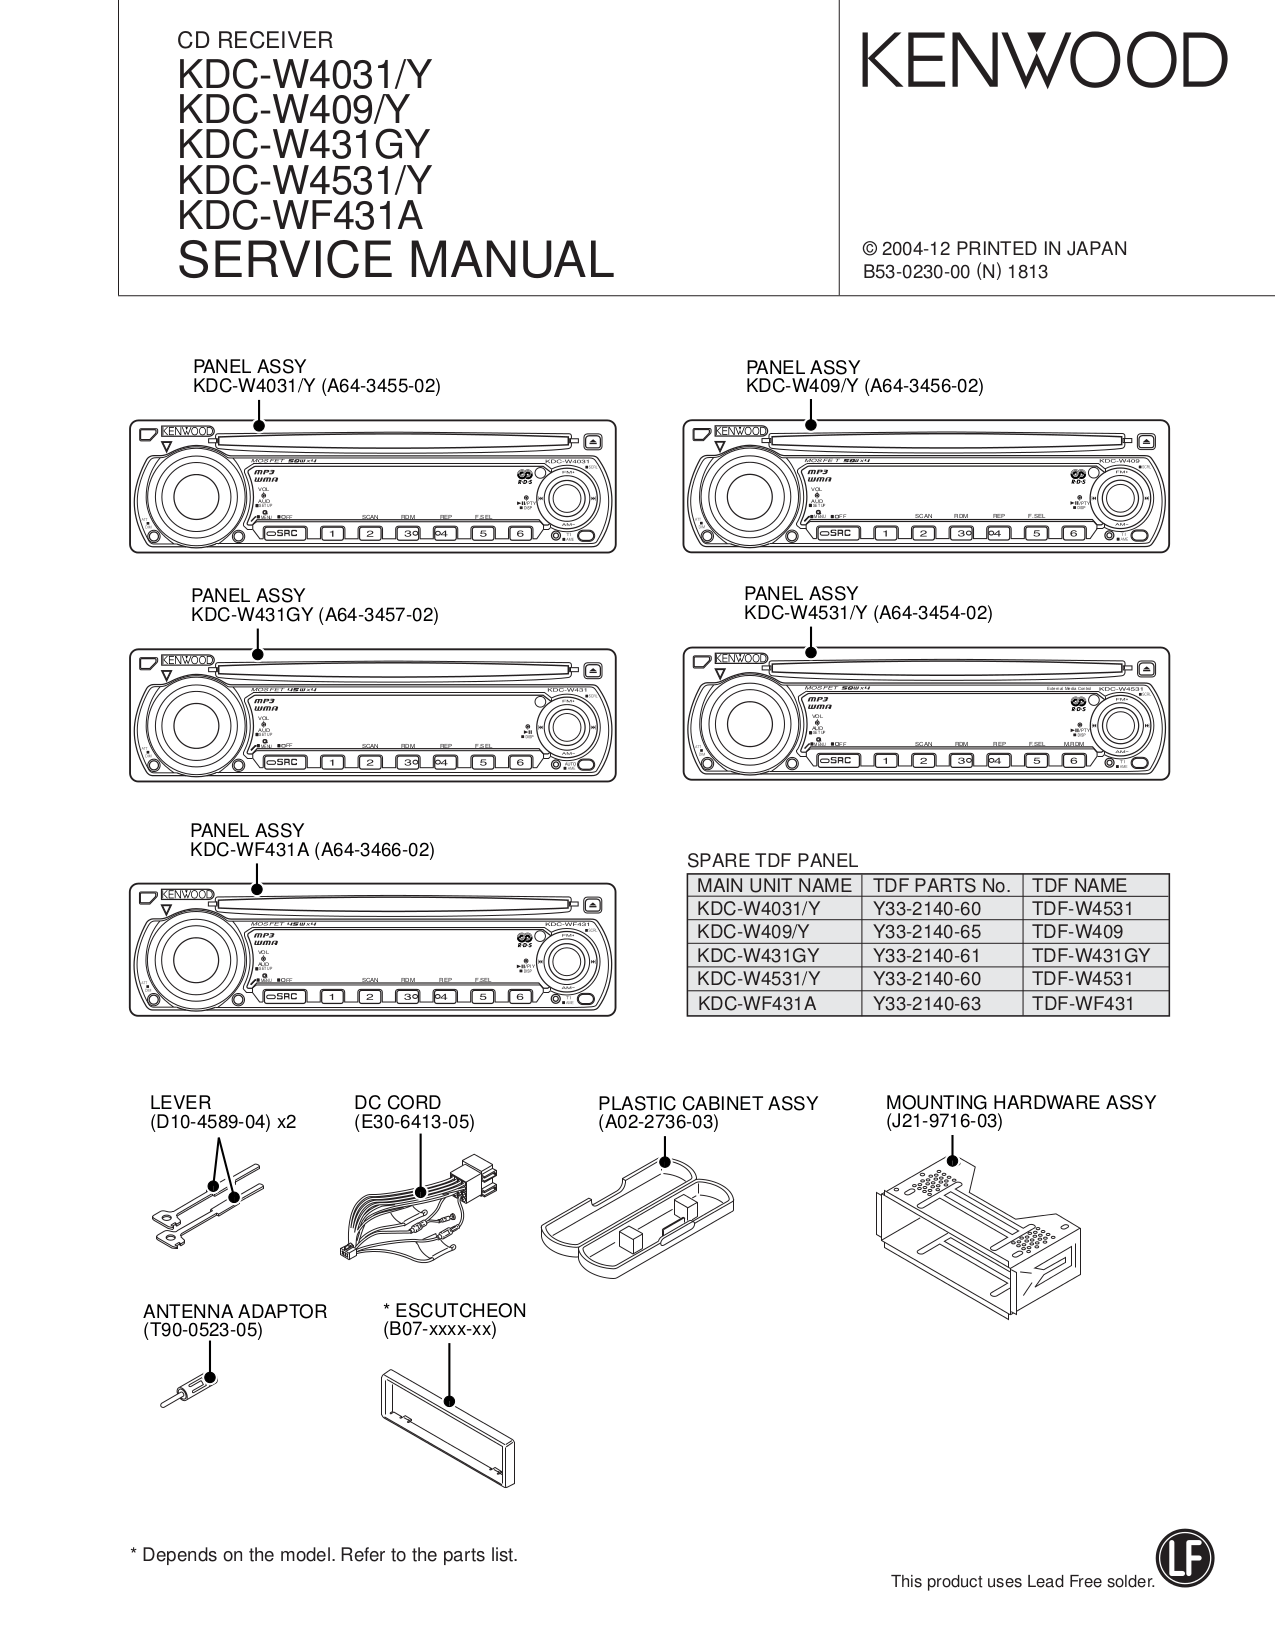 kenwood excelon dnx8120 wiring diagram how to read relay download free pdf for kdc 135 car receiver manual